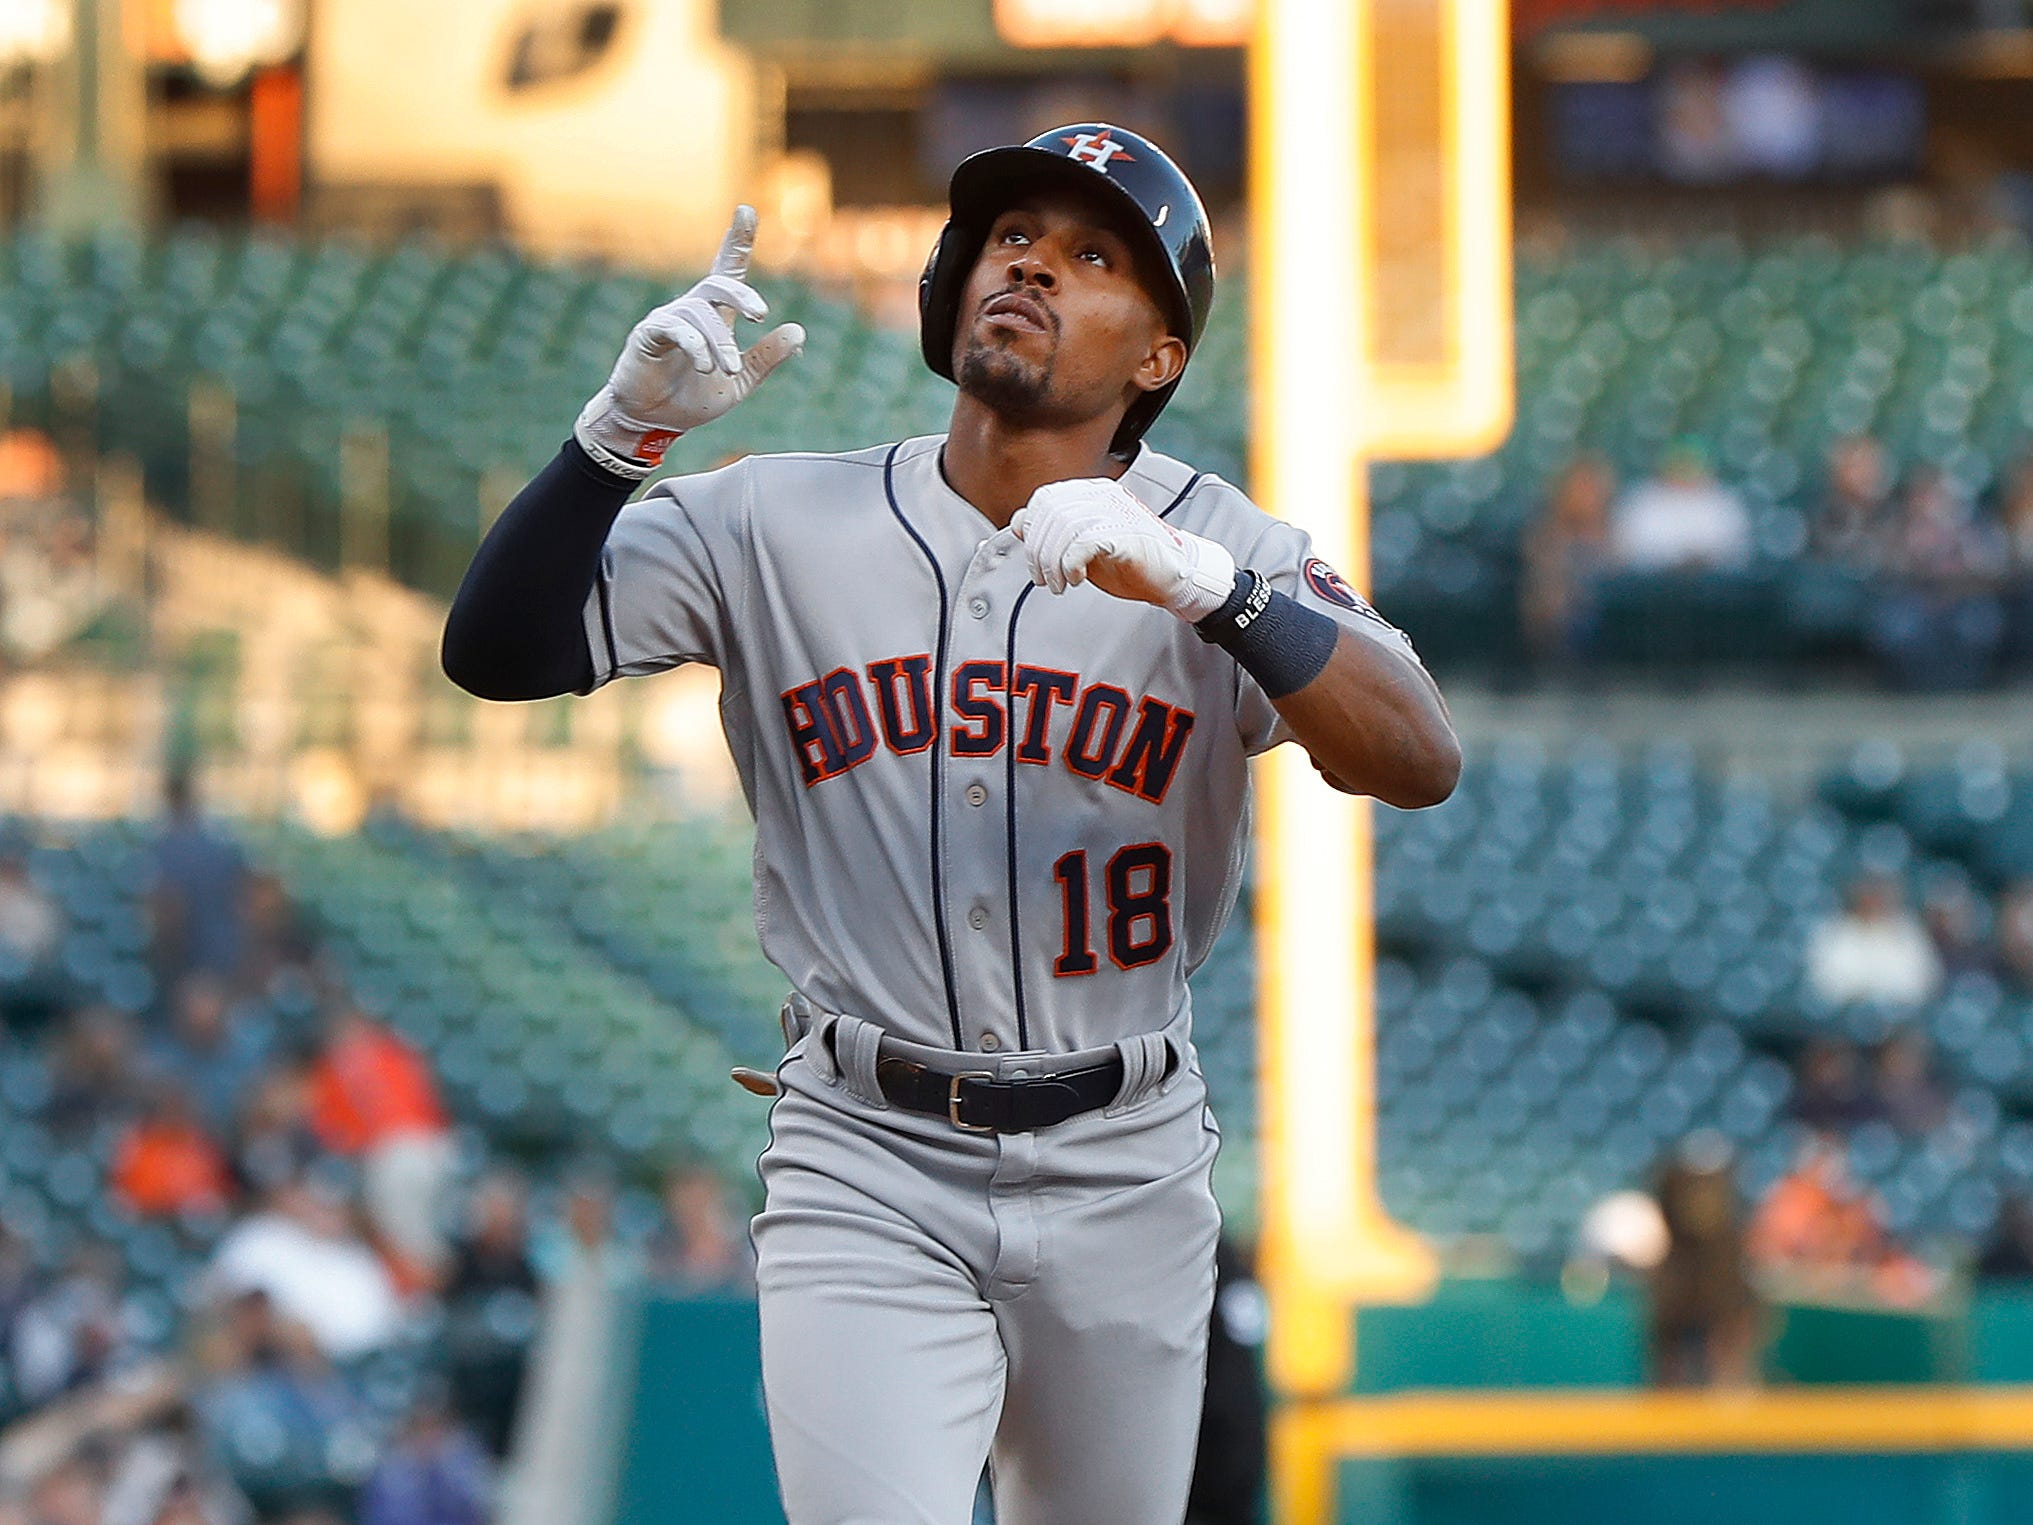 Houston Astros' Tony Kemp celebrates his two-run home run in the second inning of a baseball game against the Detroit Tigers in Detroit, Tuesday, Sept. 11, 2018.